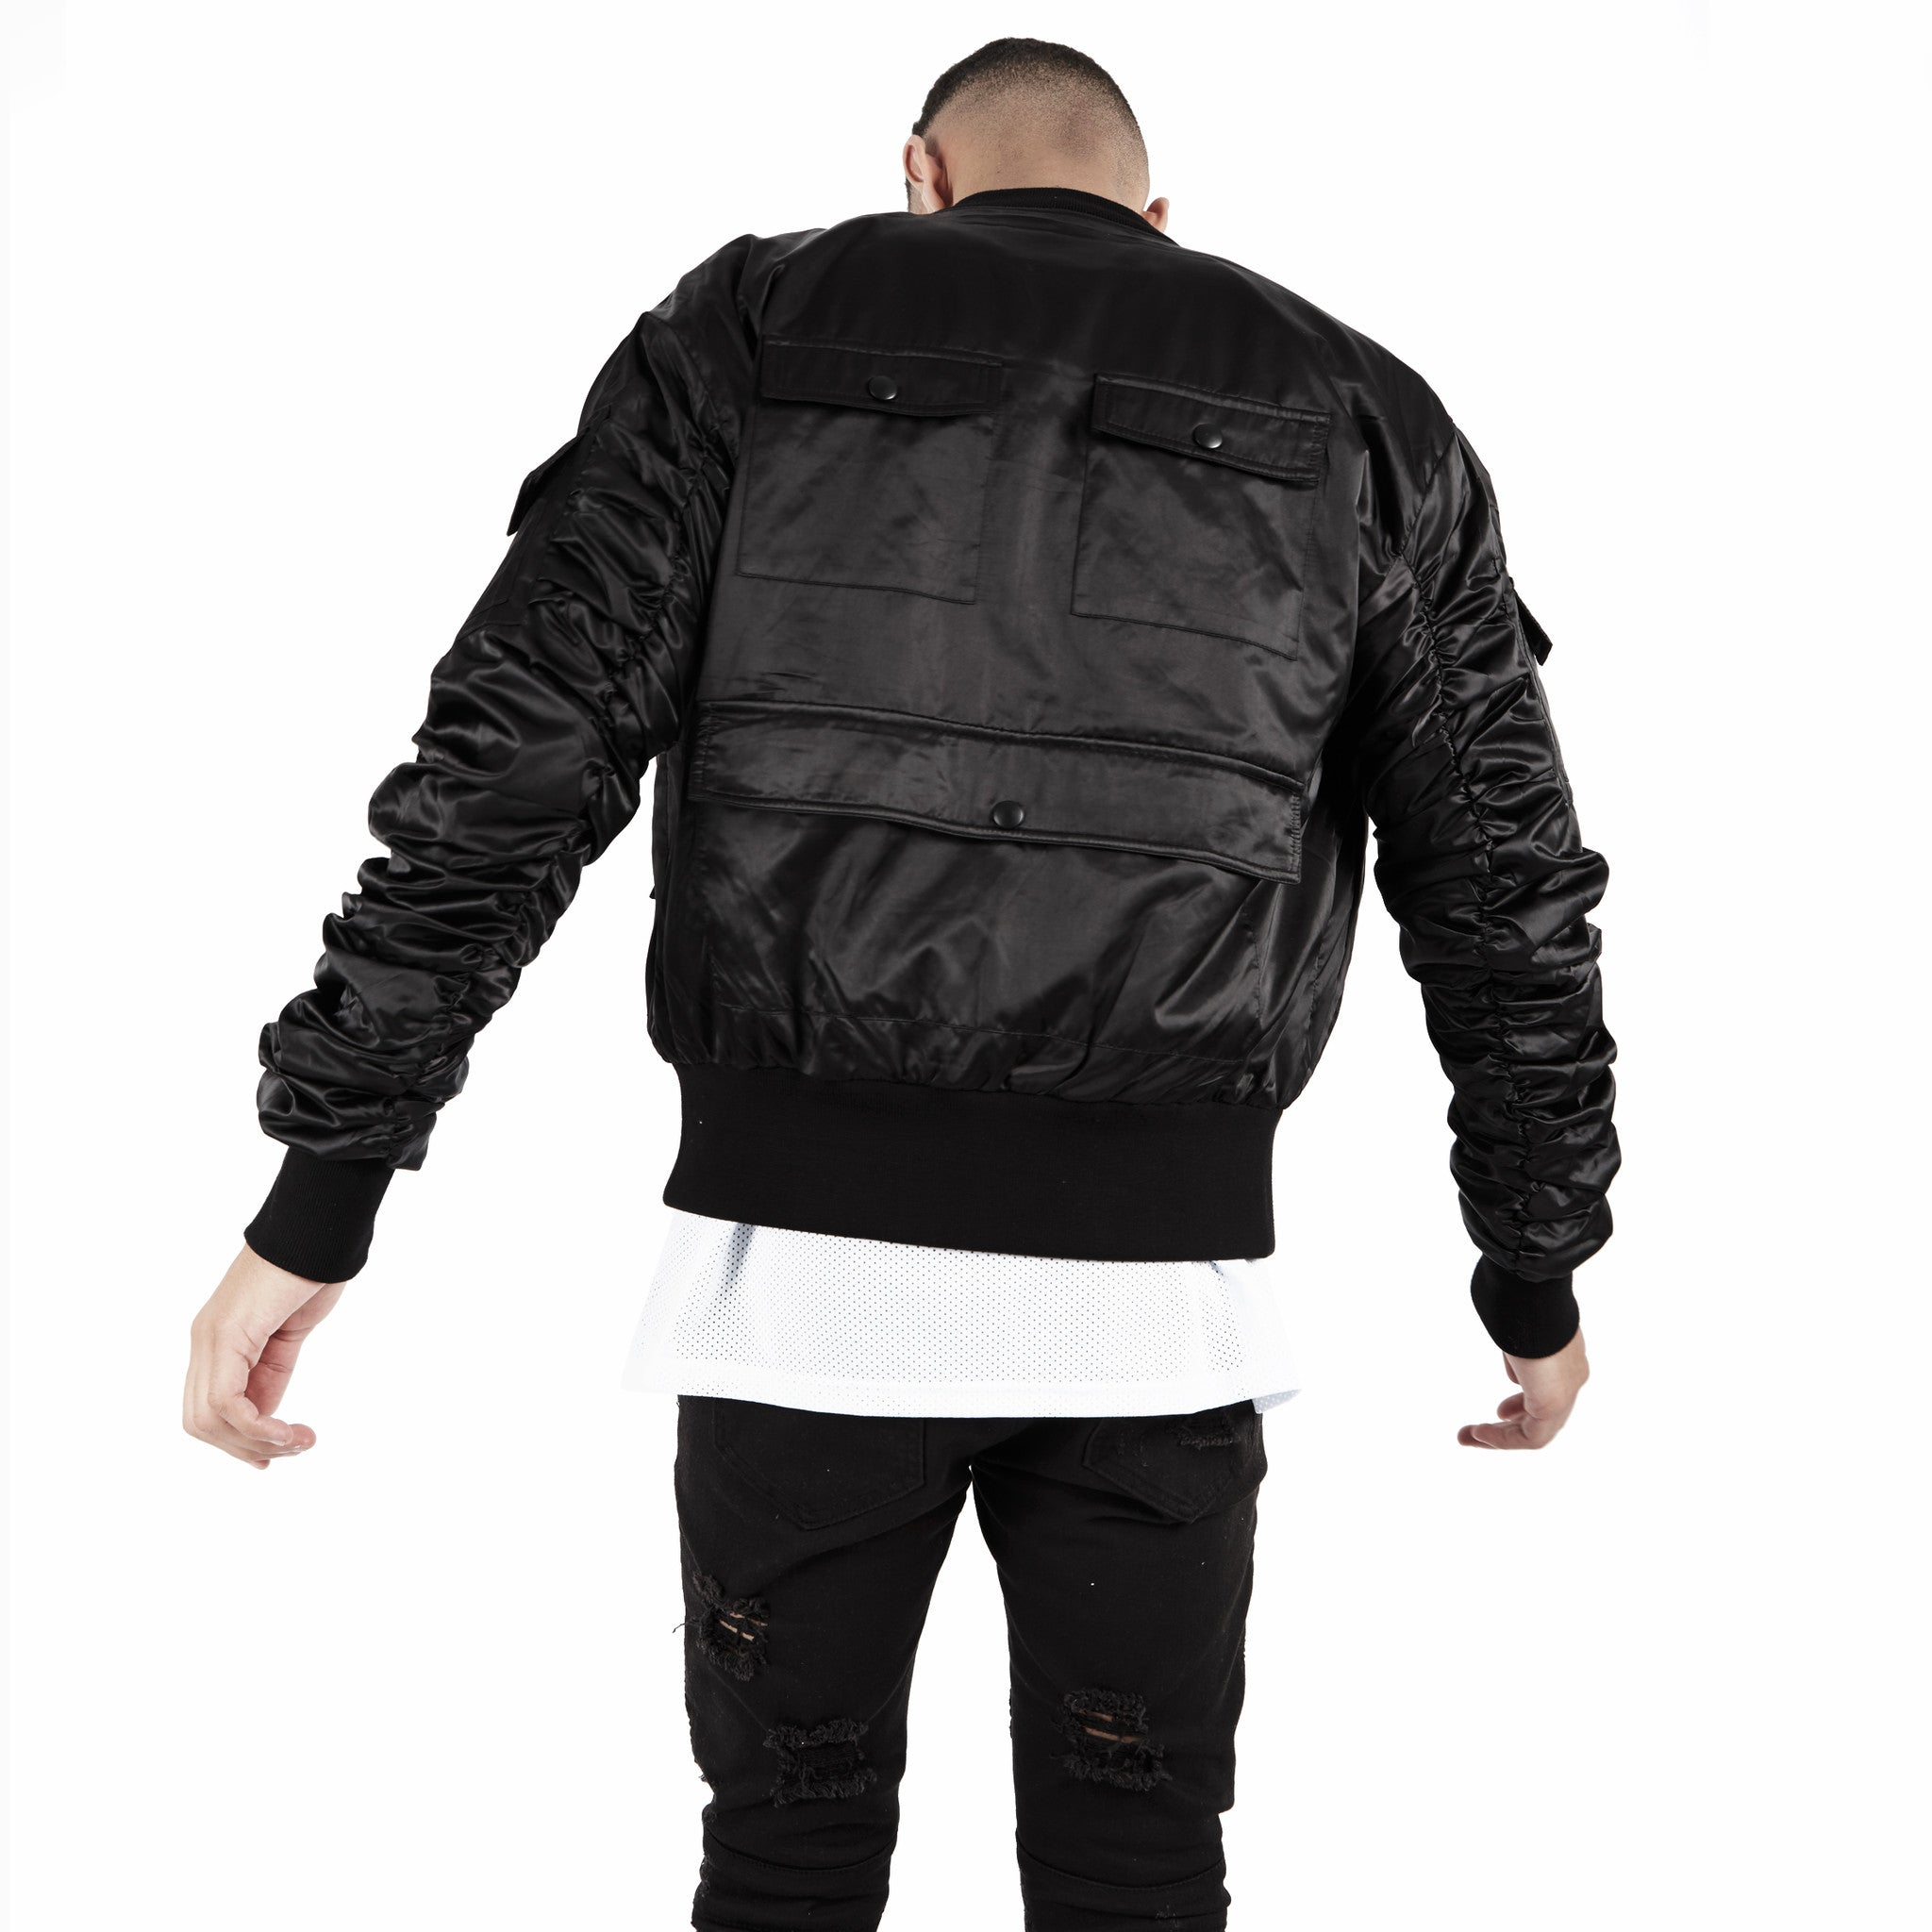 JK263 Exile Tactical Bomber Jacket - Black - underated london - underatedco - 6